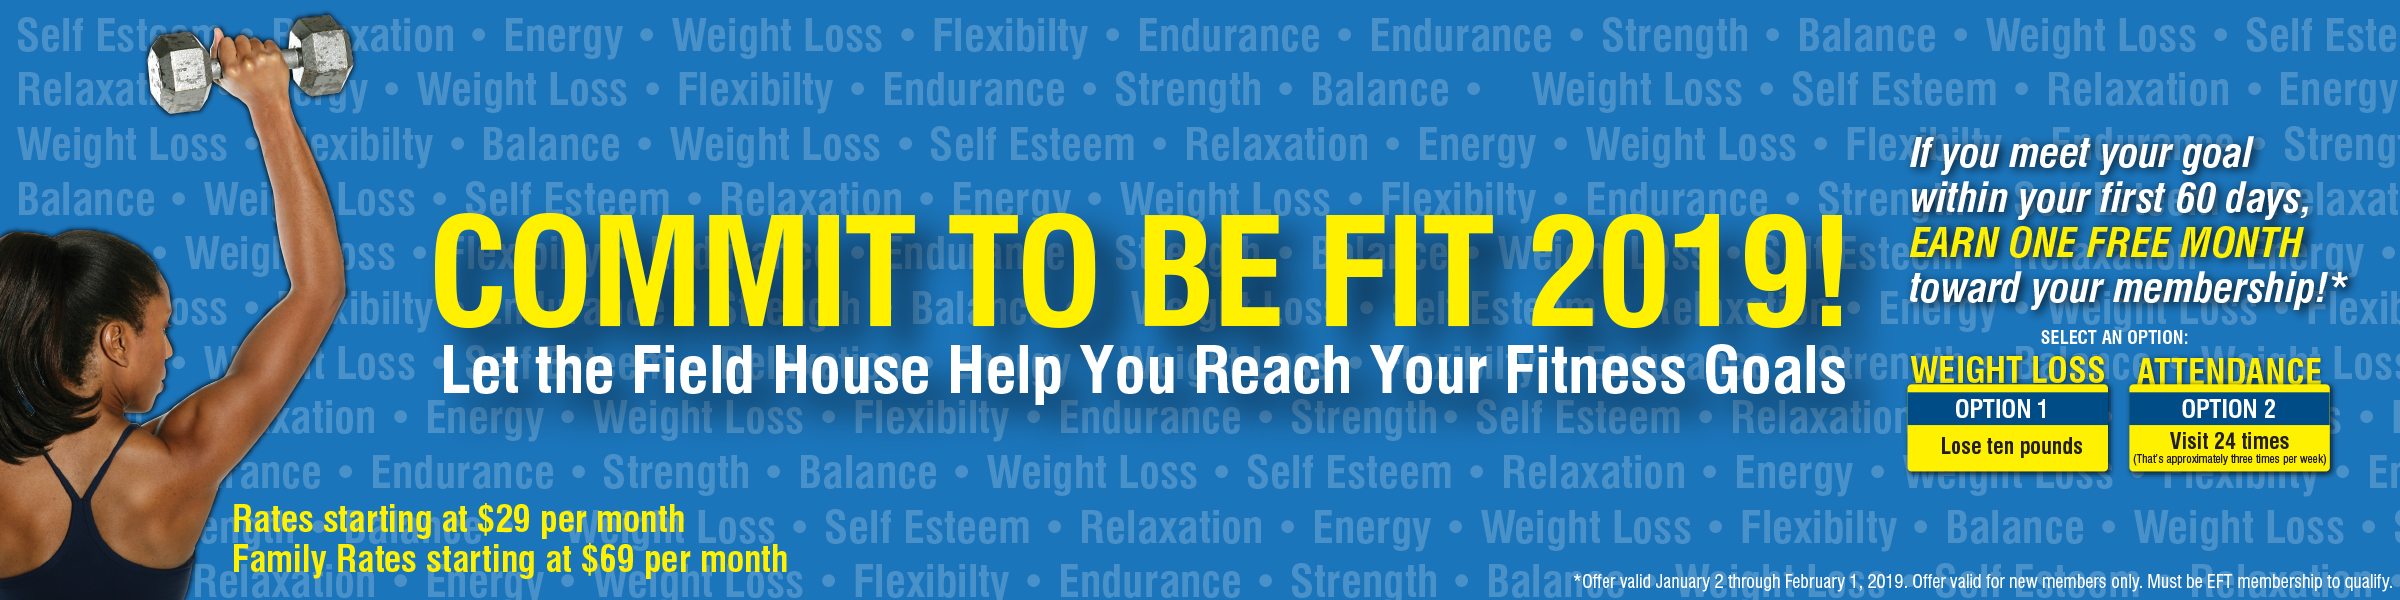 Commit to be Fit Web Banner